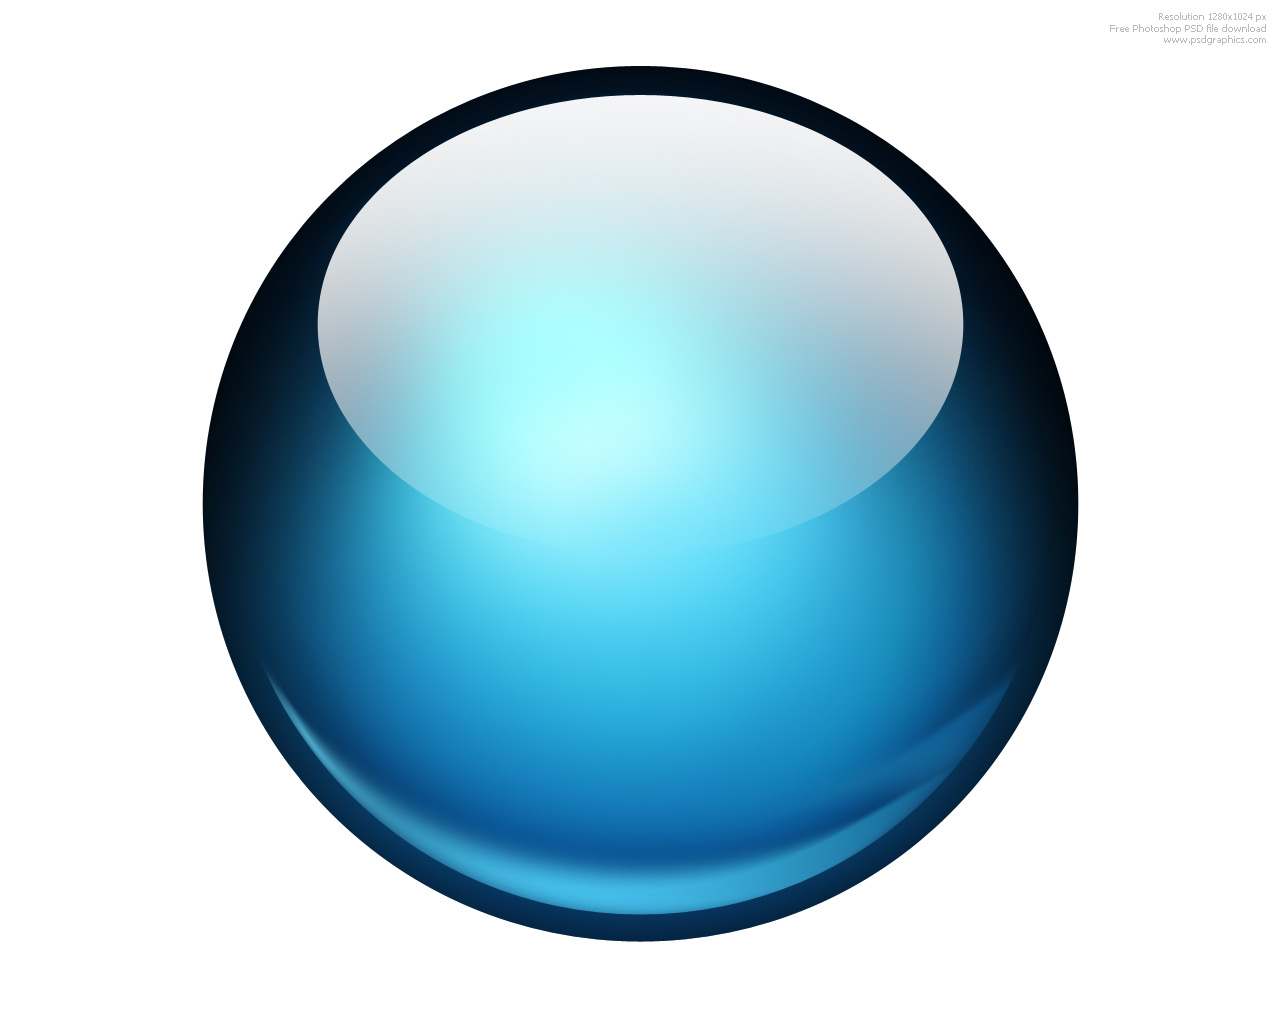 6 Blue Circle Icon Images